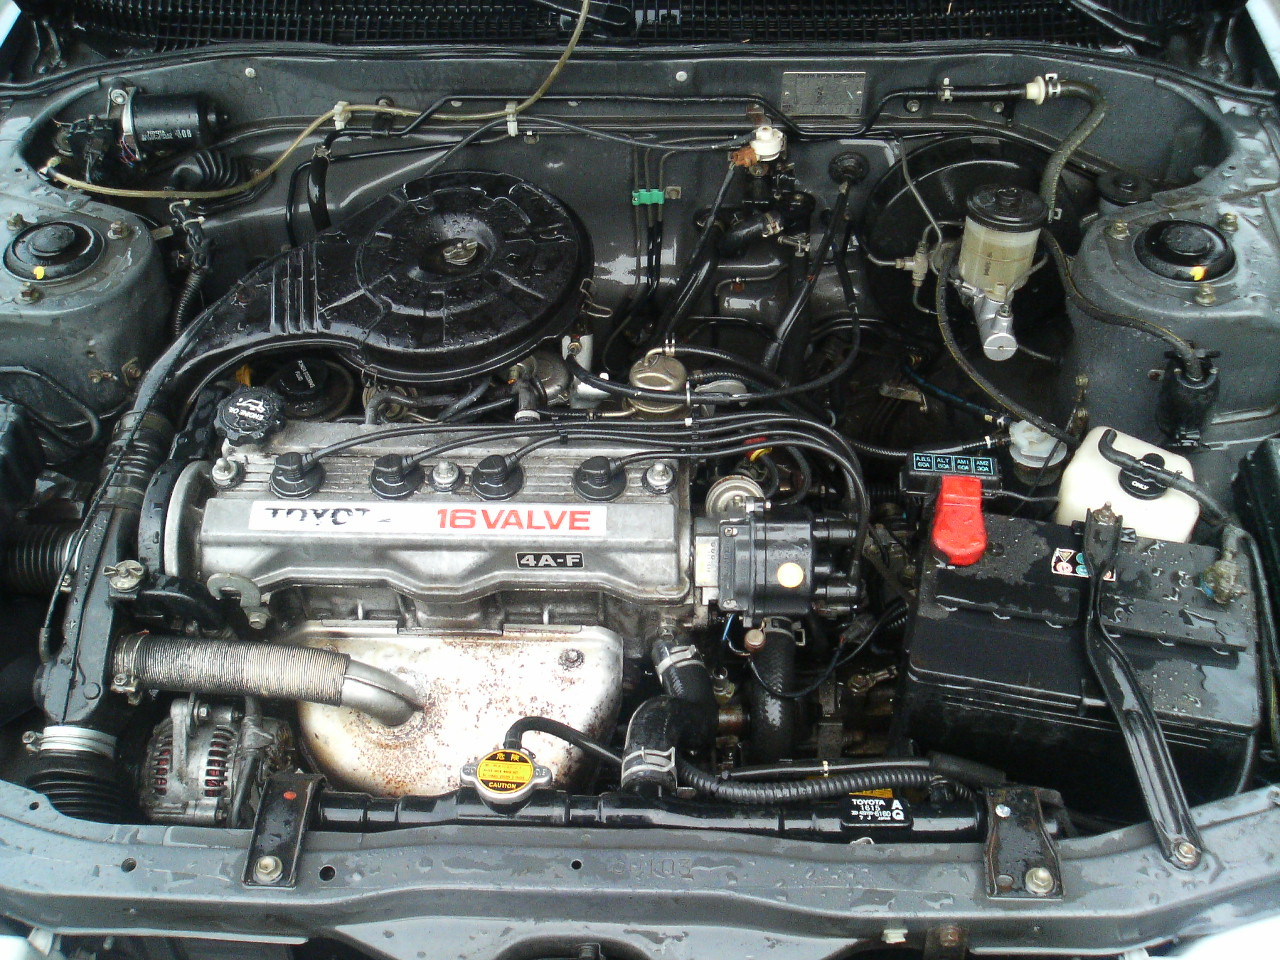 File:Toyota 4A-F engine.jpg